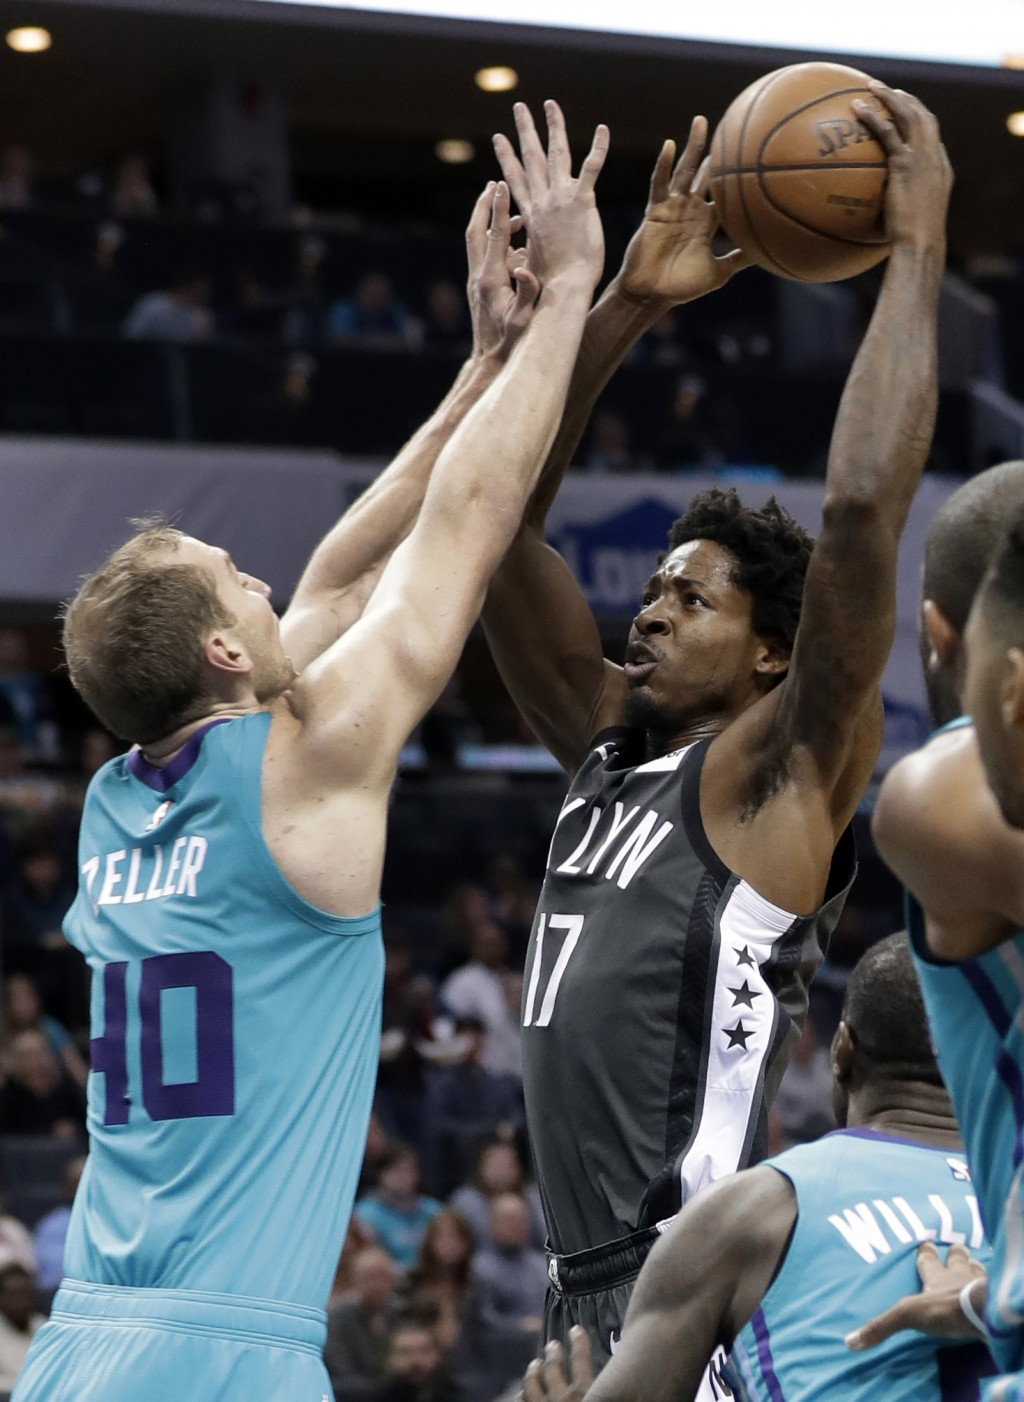 Brooklyn Nets' Ed Davis (17) drives against Charlotte Hornets' Cody Zeller (40) during the first half of an NBA basketball game in Charlotte, N.C., Sa